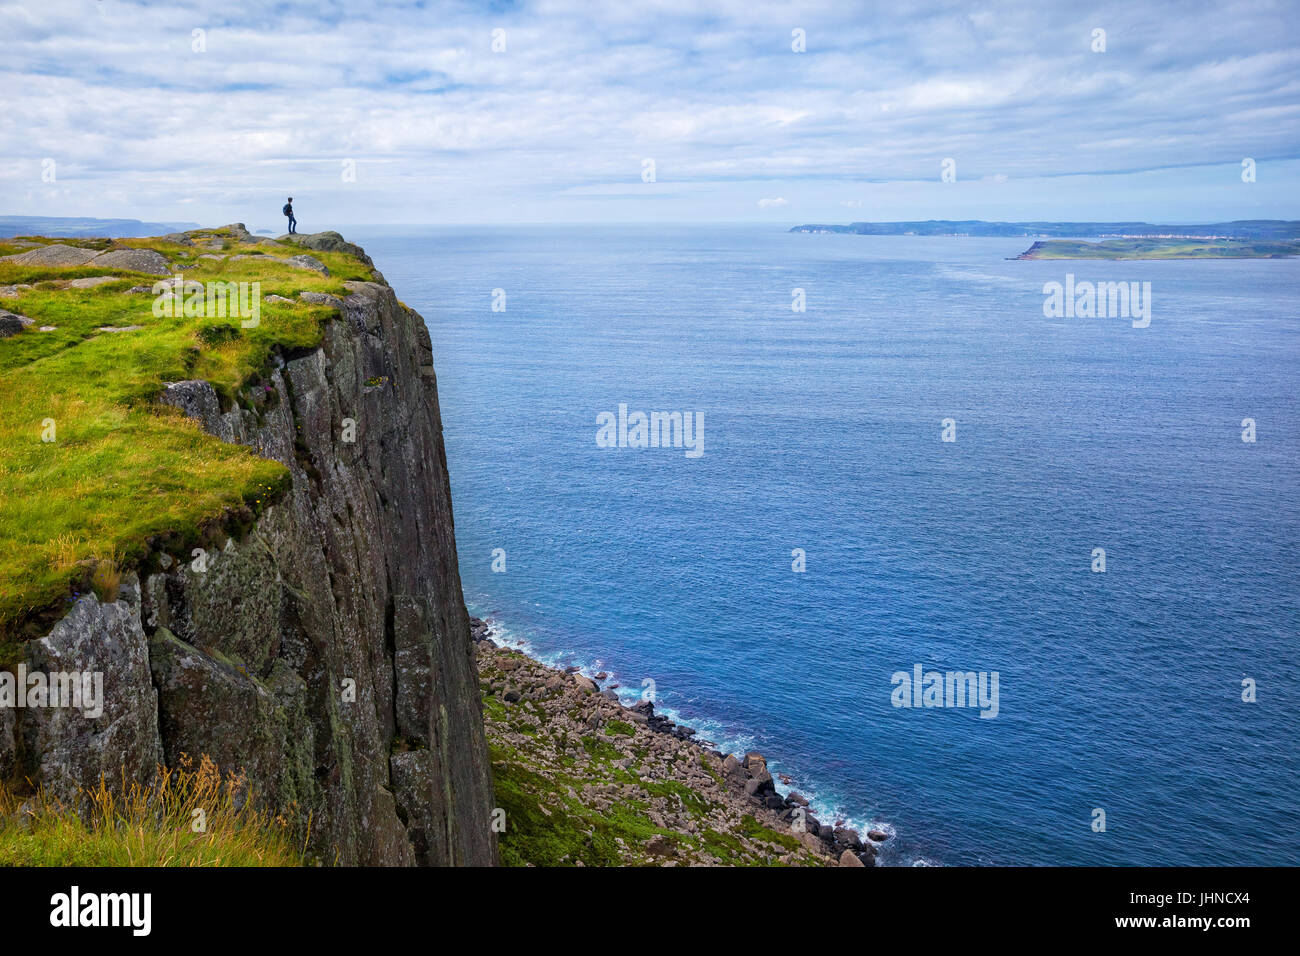 tourist with backpack standing on the cliff Fair Head, Northern Ireland, UK - Stock Image